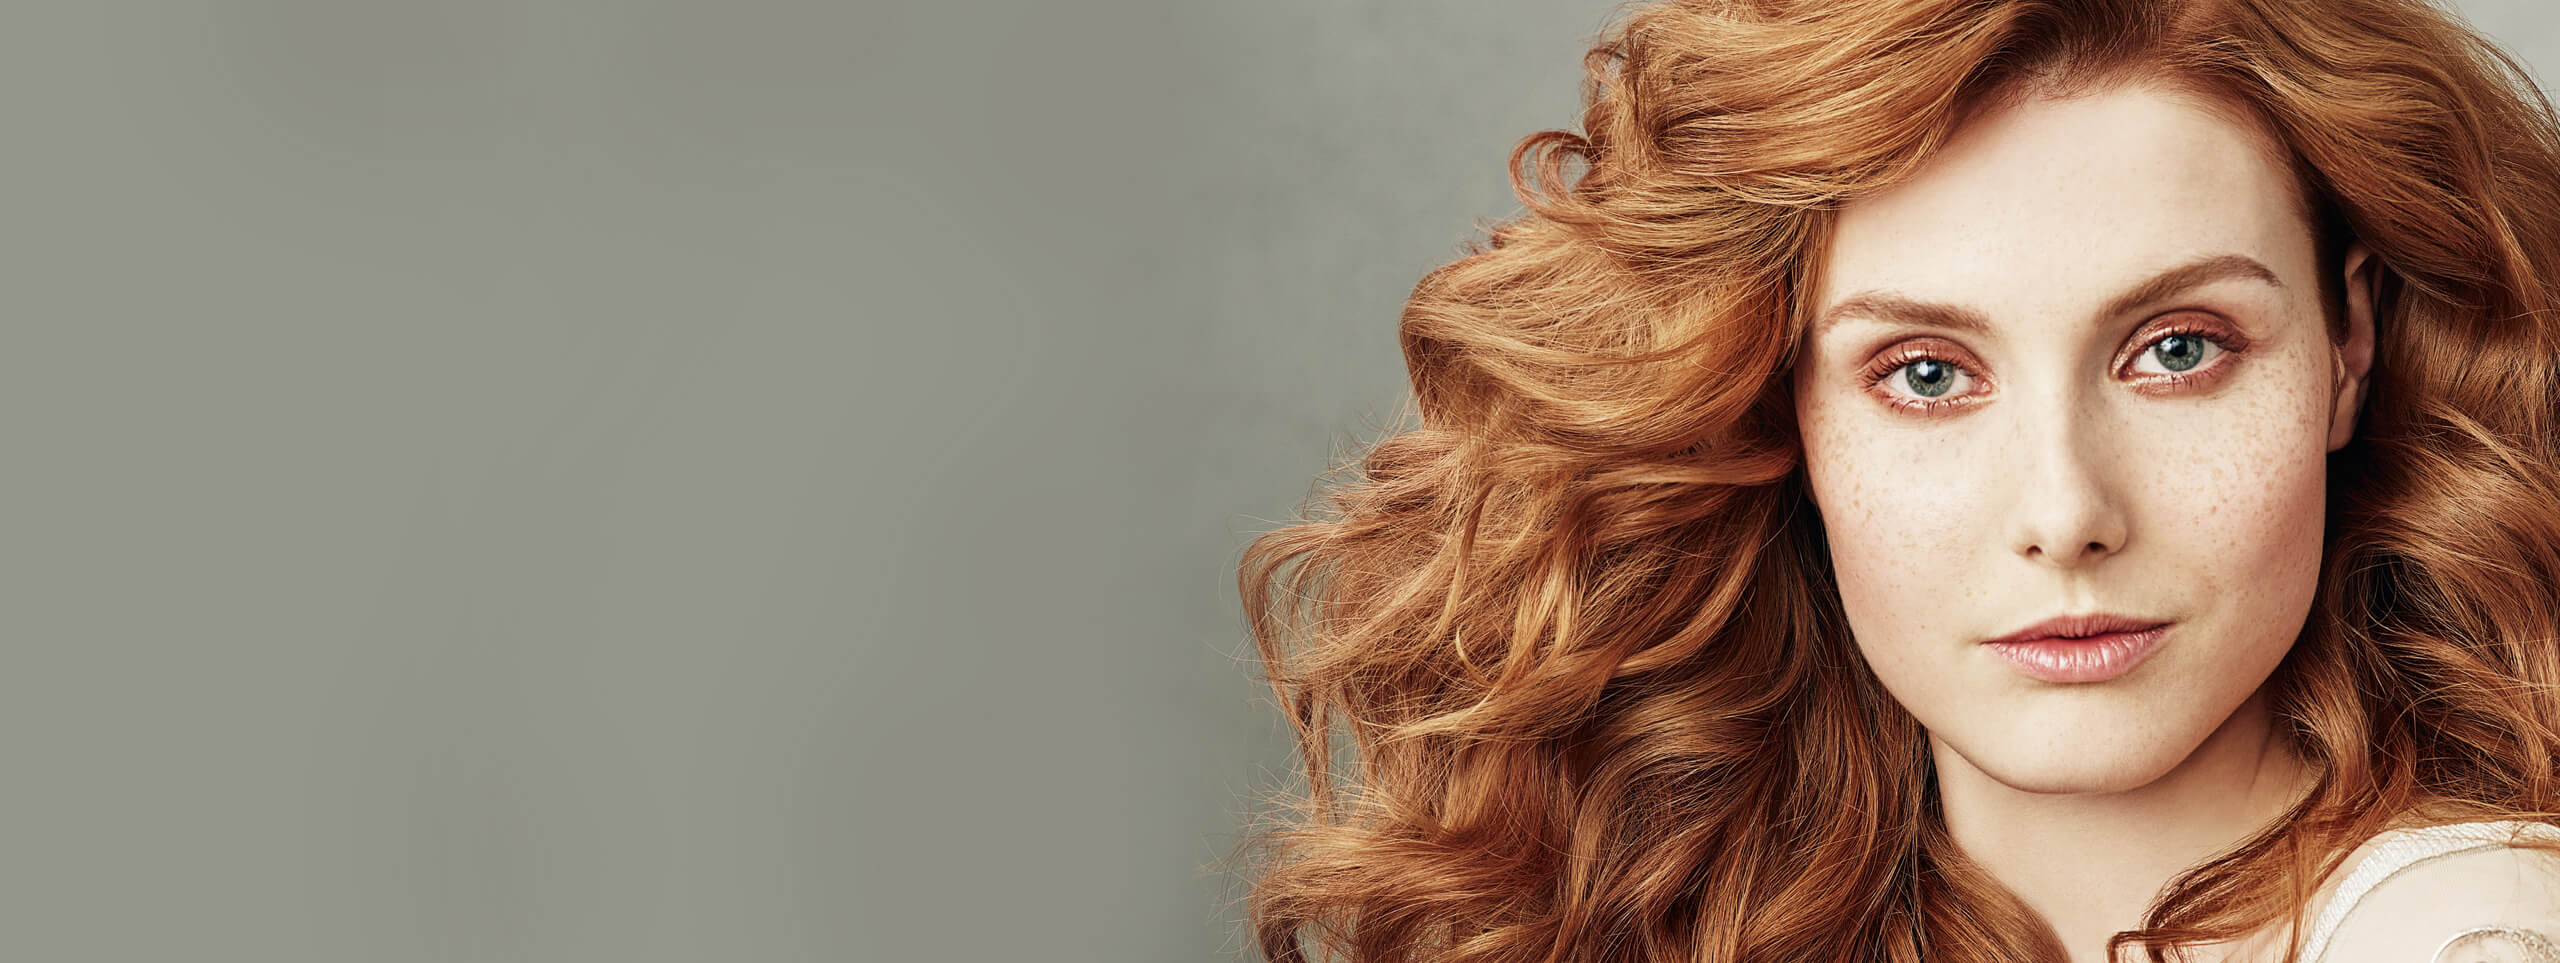 Model rocks voluminous curly hairstyle